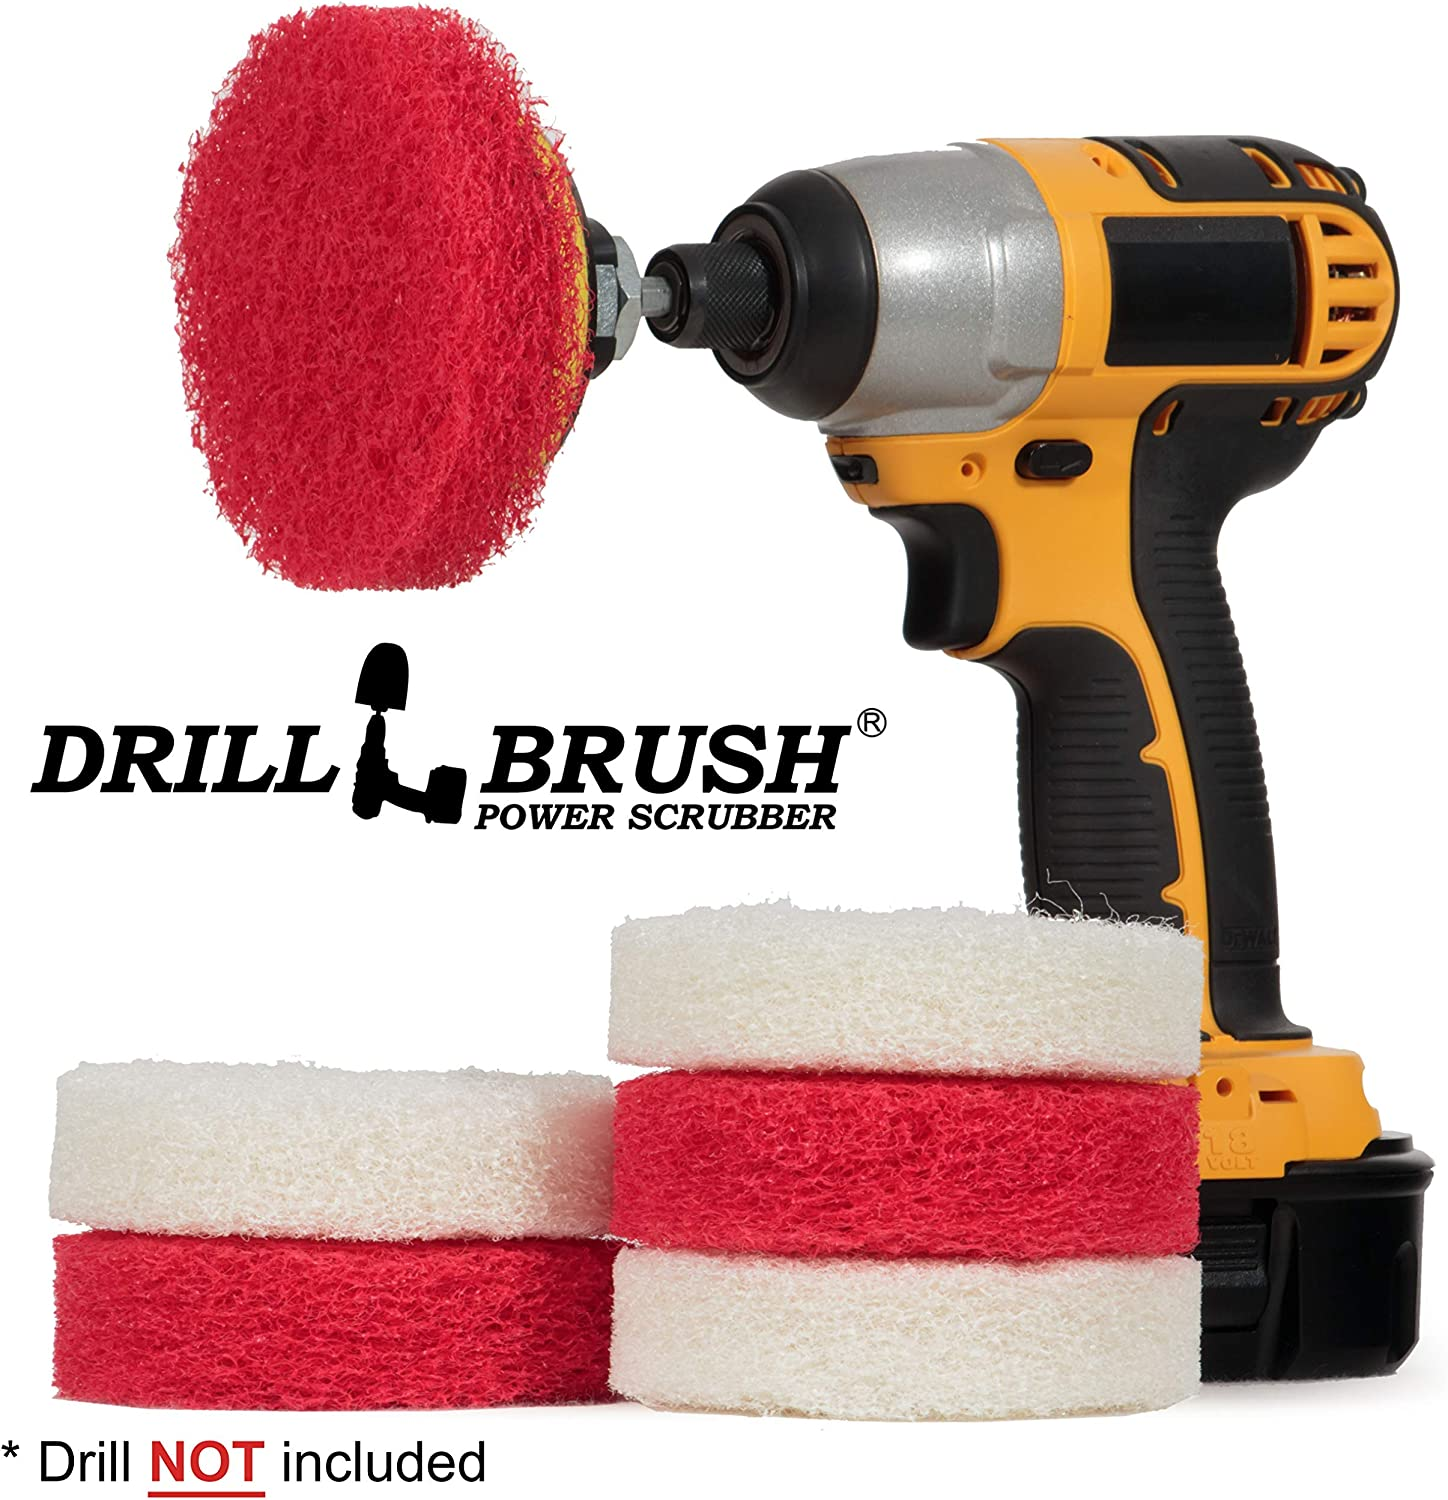 Bathroom - Cleaning Supplies - Drill Brush Power Scrubber Pads - Shower Cleaner - Bathtub - Bath Mat - Bathroom Sink - Tile Cleaner - Baseboard Cleaner - Vinyl Flooring - Hard Water Stain Remover